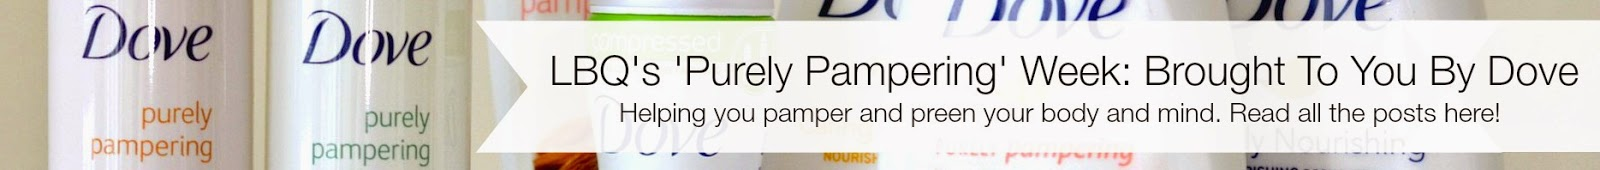 http://www.londonbeautyqueen.com/search/label/Purely%20Pampering%20Week